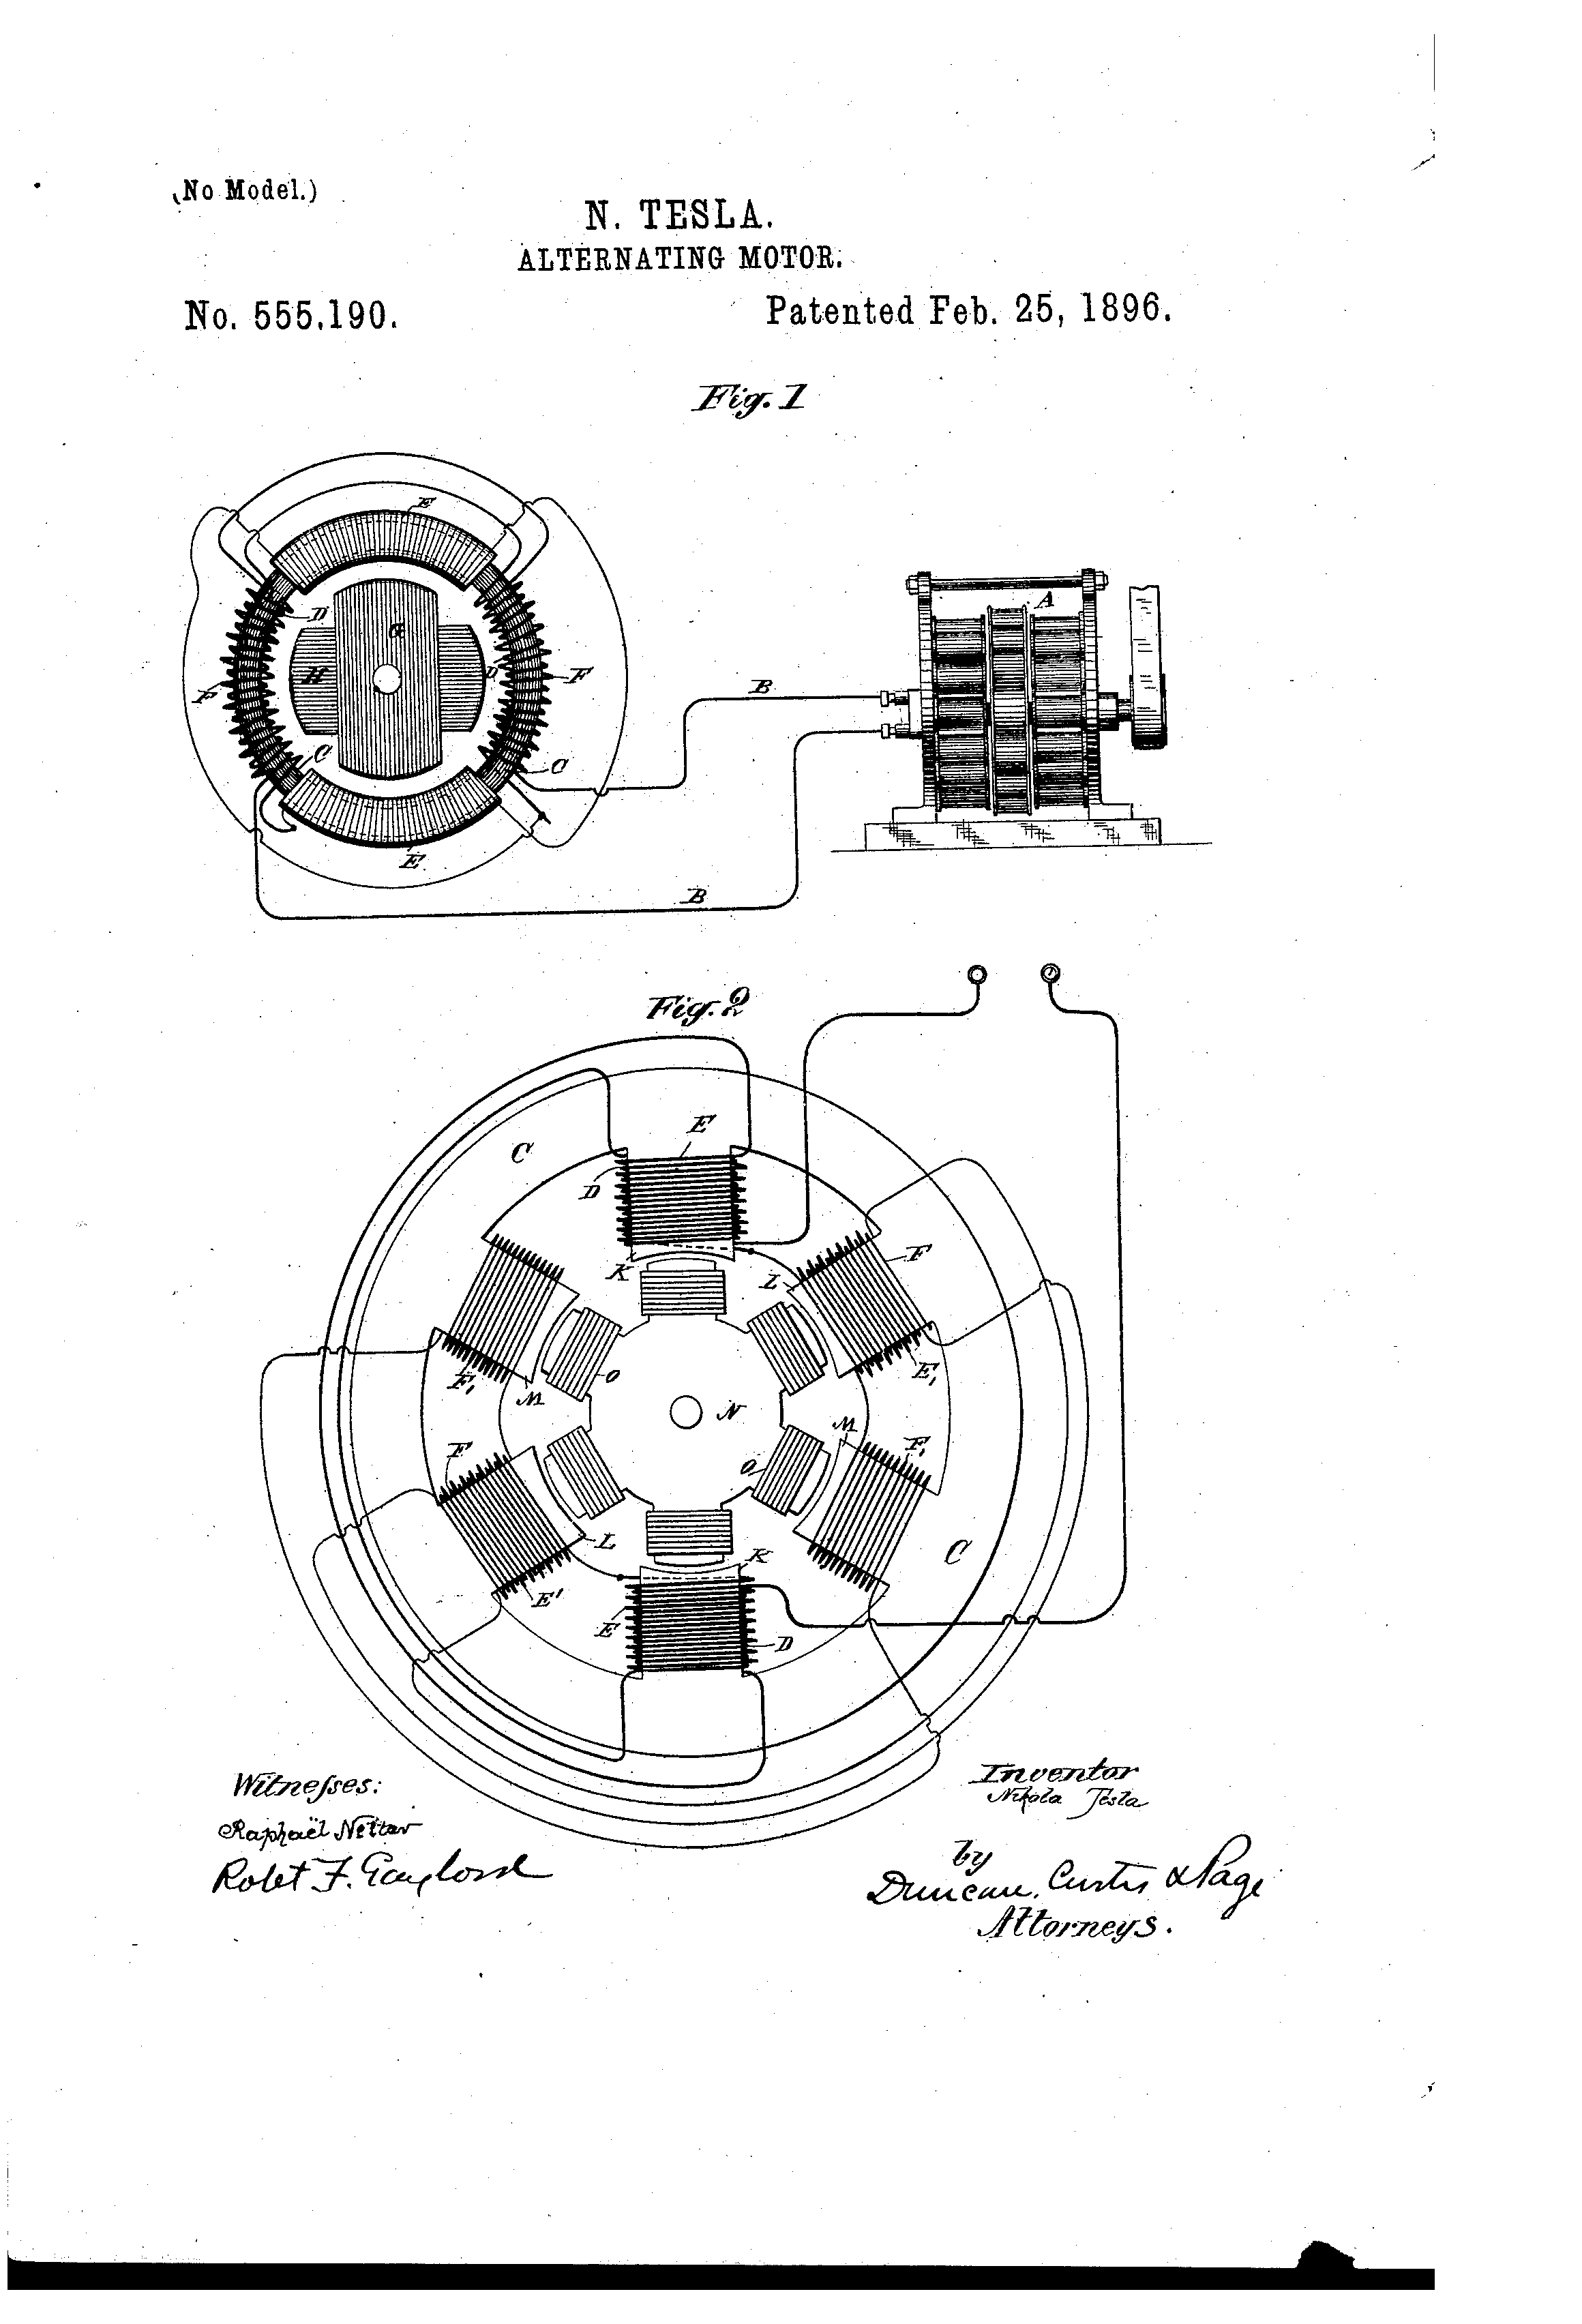 Resistor Drawing At Free For Personal Use Alternating Current Diagram 2320x3408 Patent Us555190 Motor Google Patents Wiring